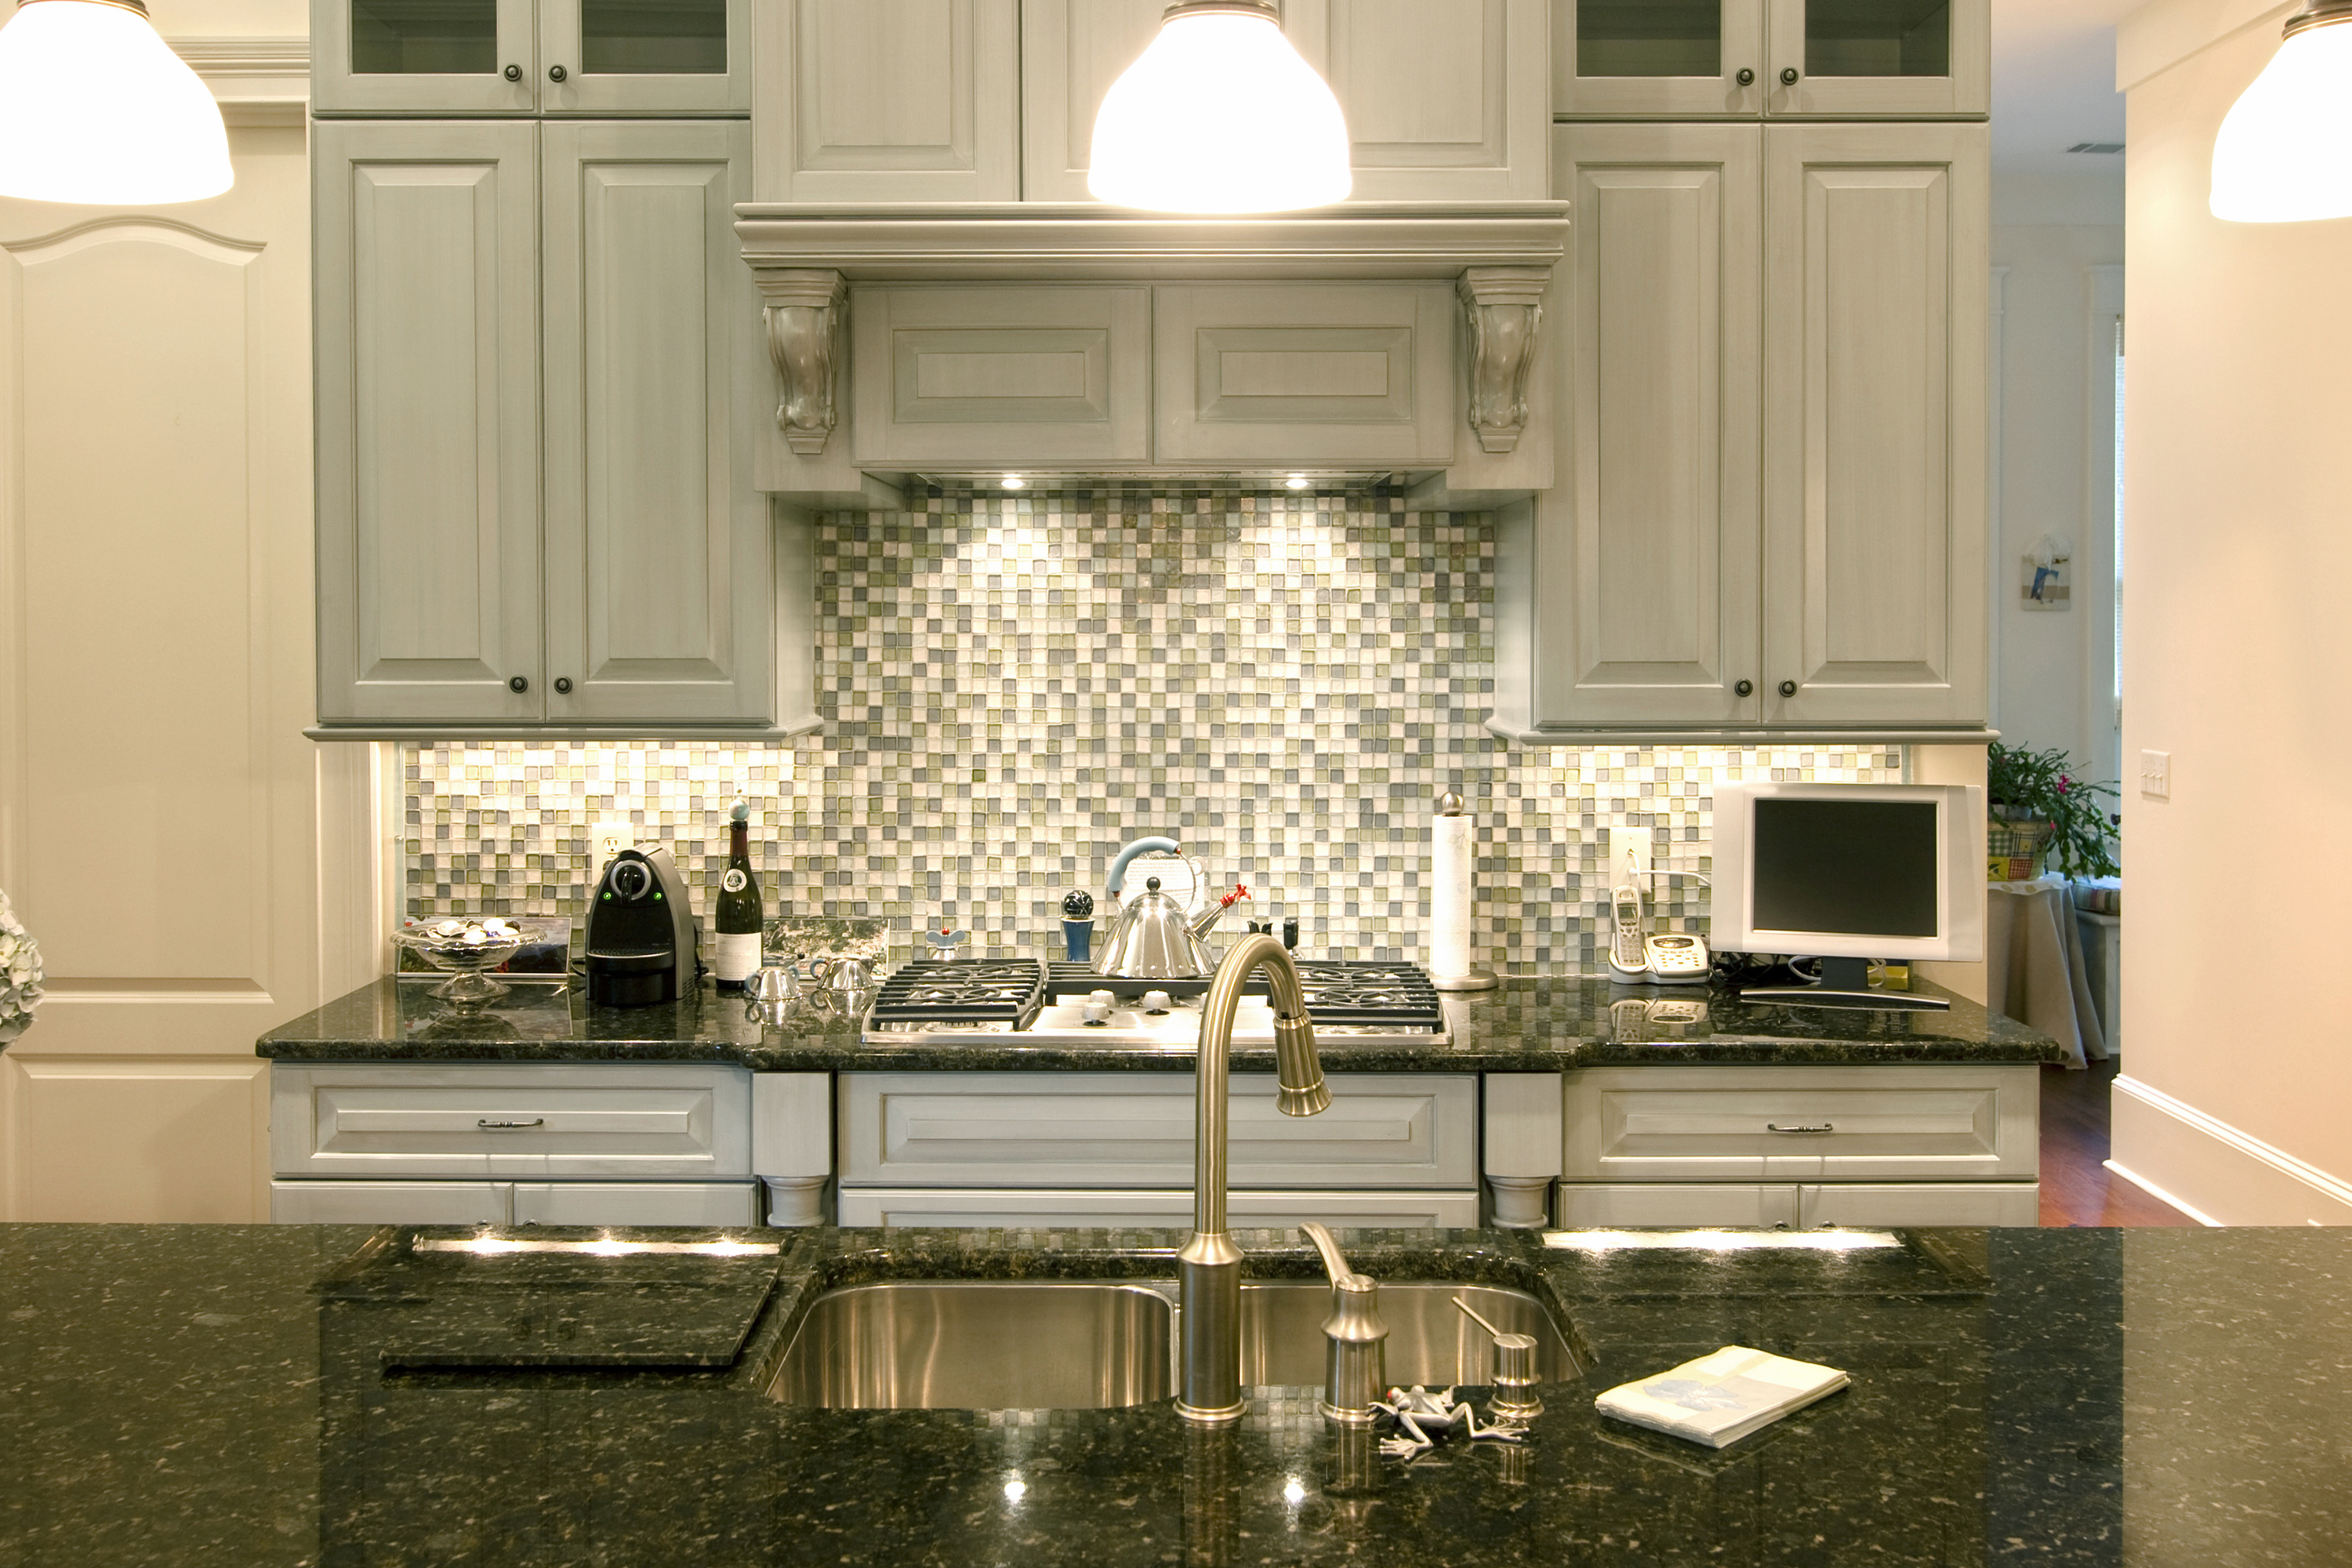 The best backsplash ideas for black granite countertops Kitchen backsplash ideas